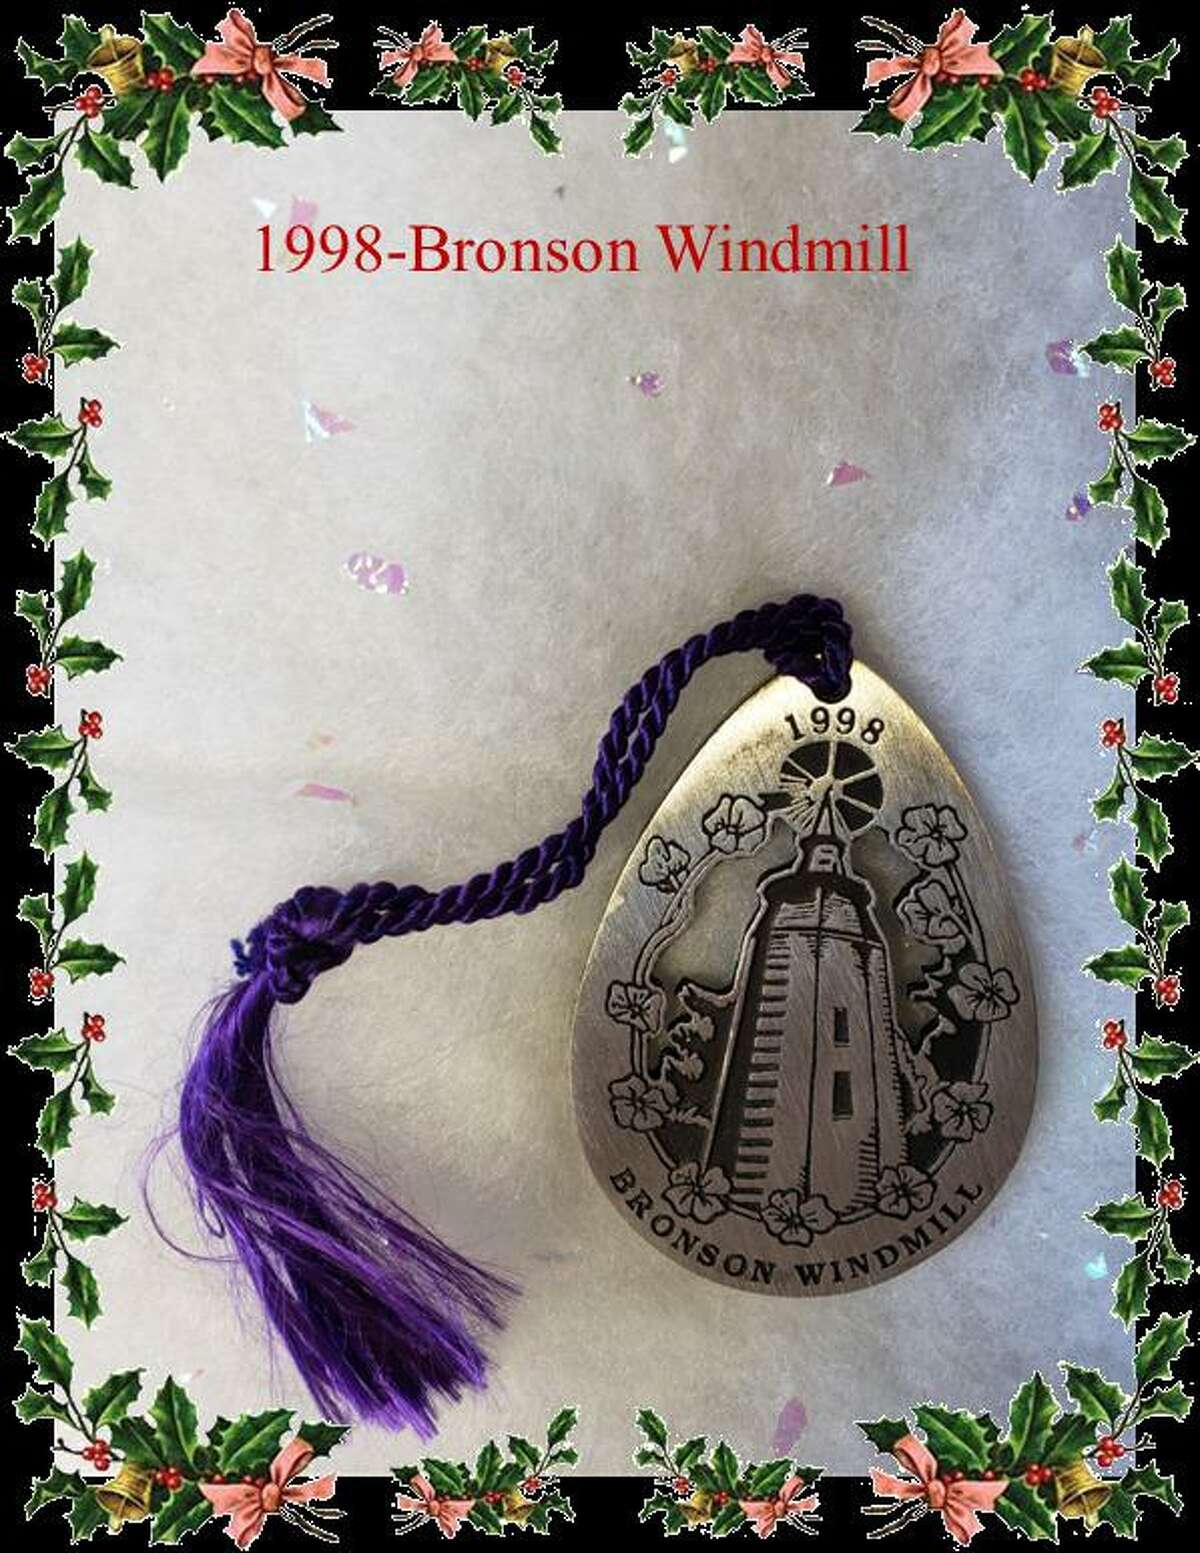 Six different Holiday ornaments from the company Woodbury Pewter, and of historic landmark buildings in Fairfield are available for purchase from the Fairfield Chamber of Commerce. The ornaments are $20 each, or $100 for a set of six ornaments. Pictured is one of the ornaments, the 1998 Bronson Windmill.